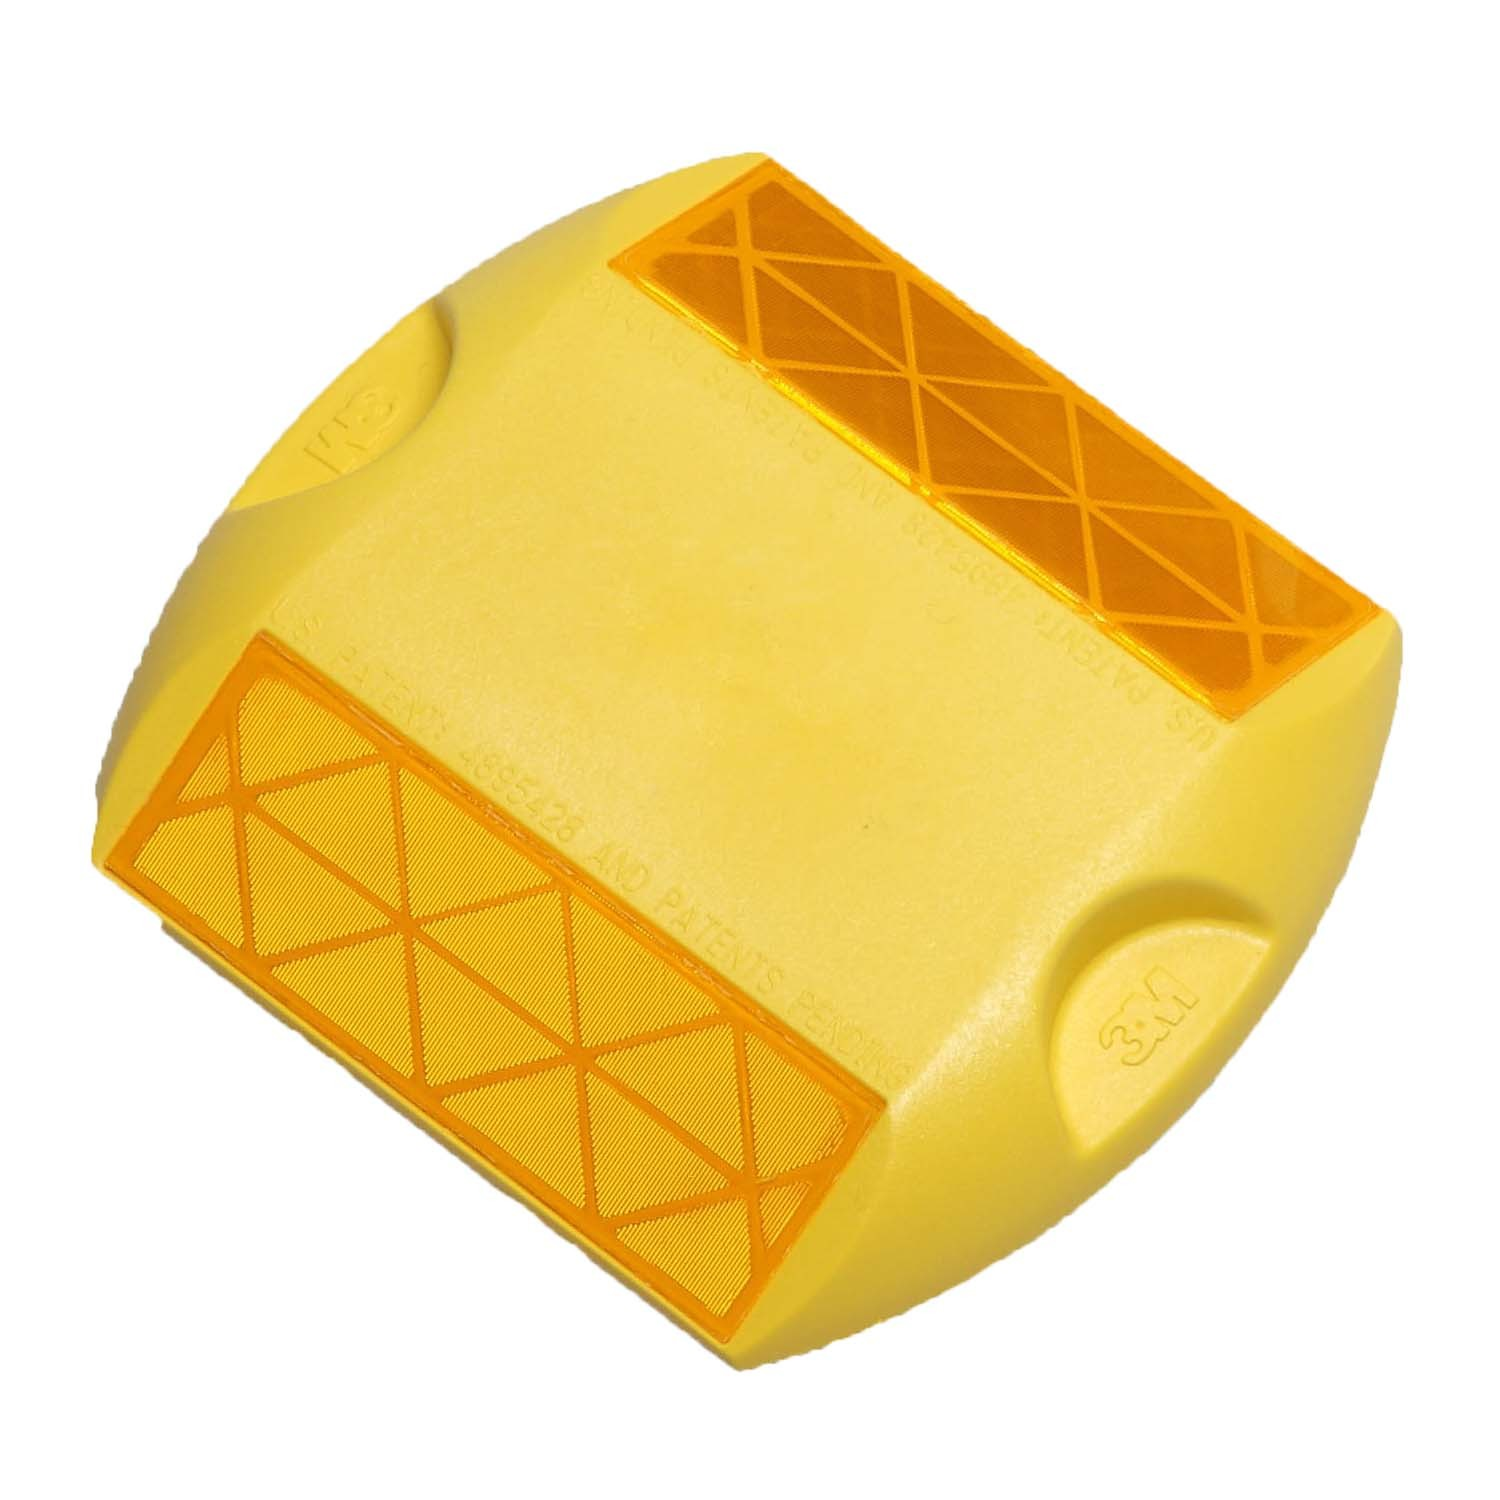 Two-Way Yellow 3M Raised Pavement Marker Series 290 RPM-290-2Y